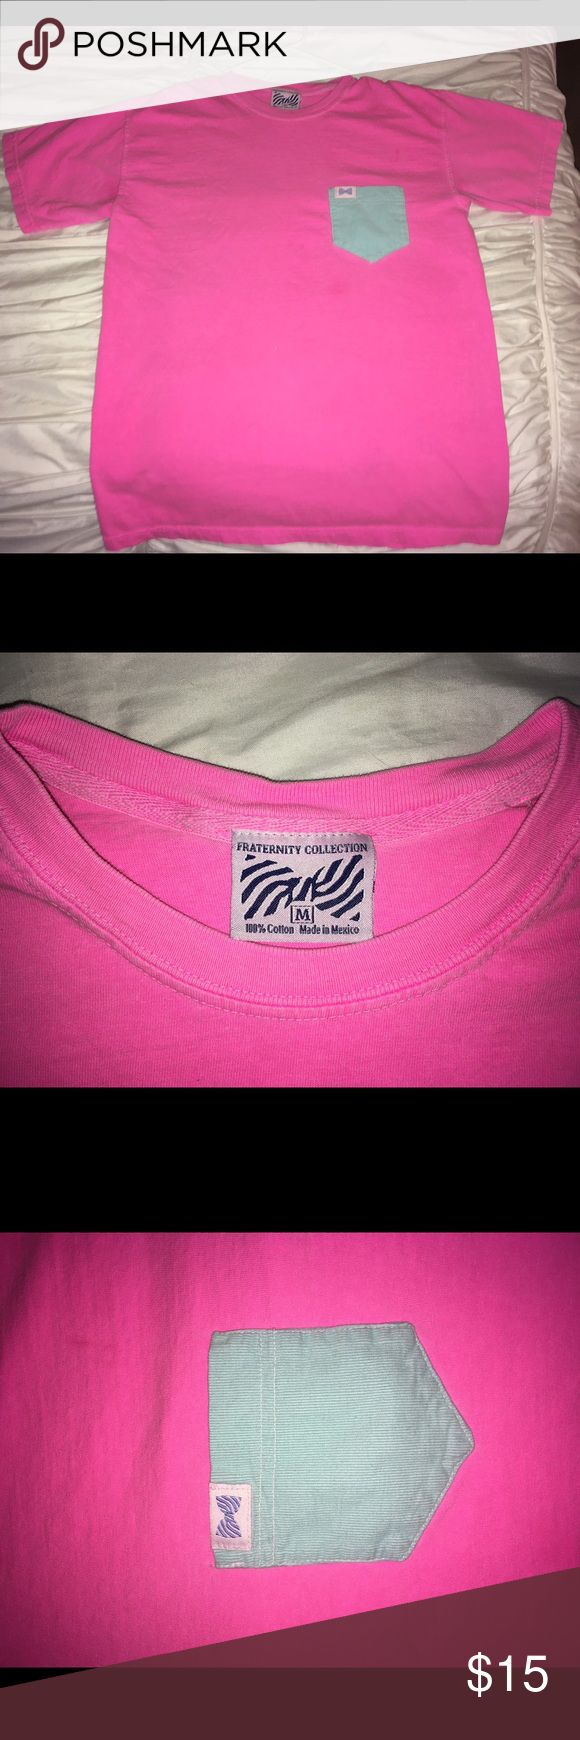 Fraternity Collection T-Shirt Fraternity Collection size M hot pink t-shirt. Super comfortable and only worn 3 times! No stains, ware or tare at all. Fraternity Collection Tops Tees - Short Sleeve